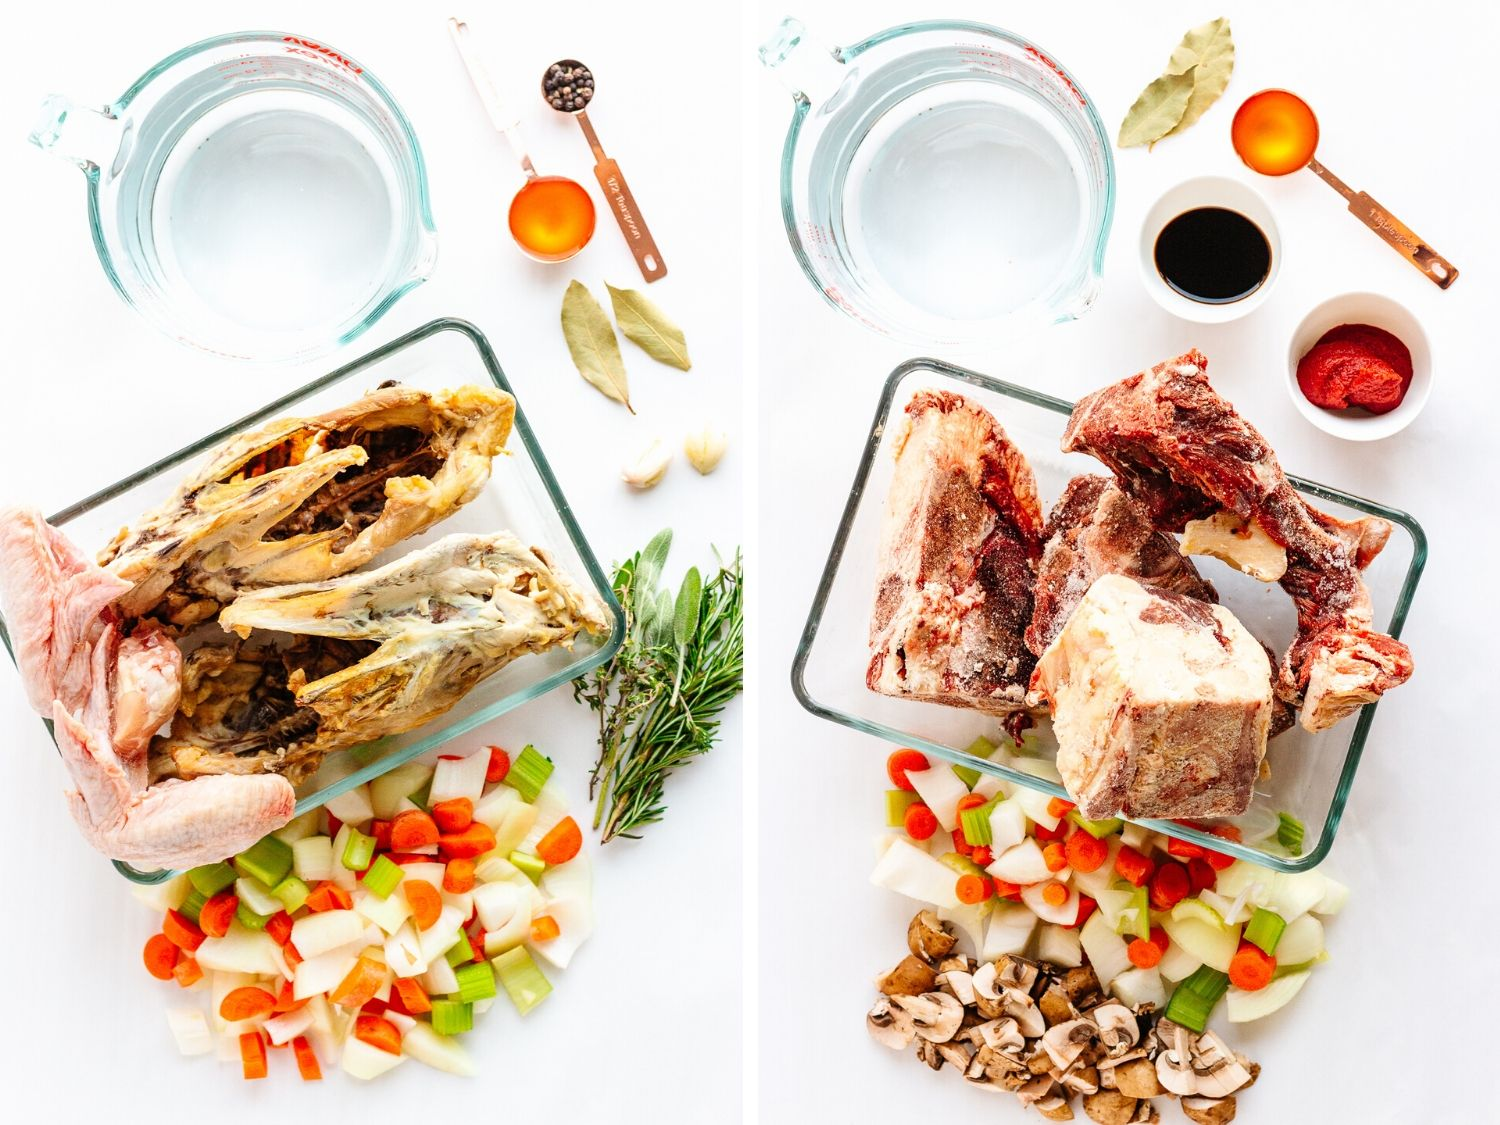 Collage of two photos showing ingredients used for chicken and beef bone broth.